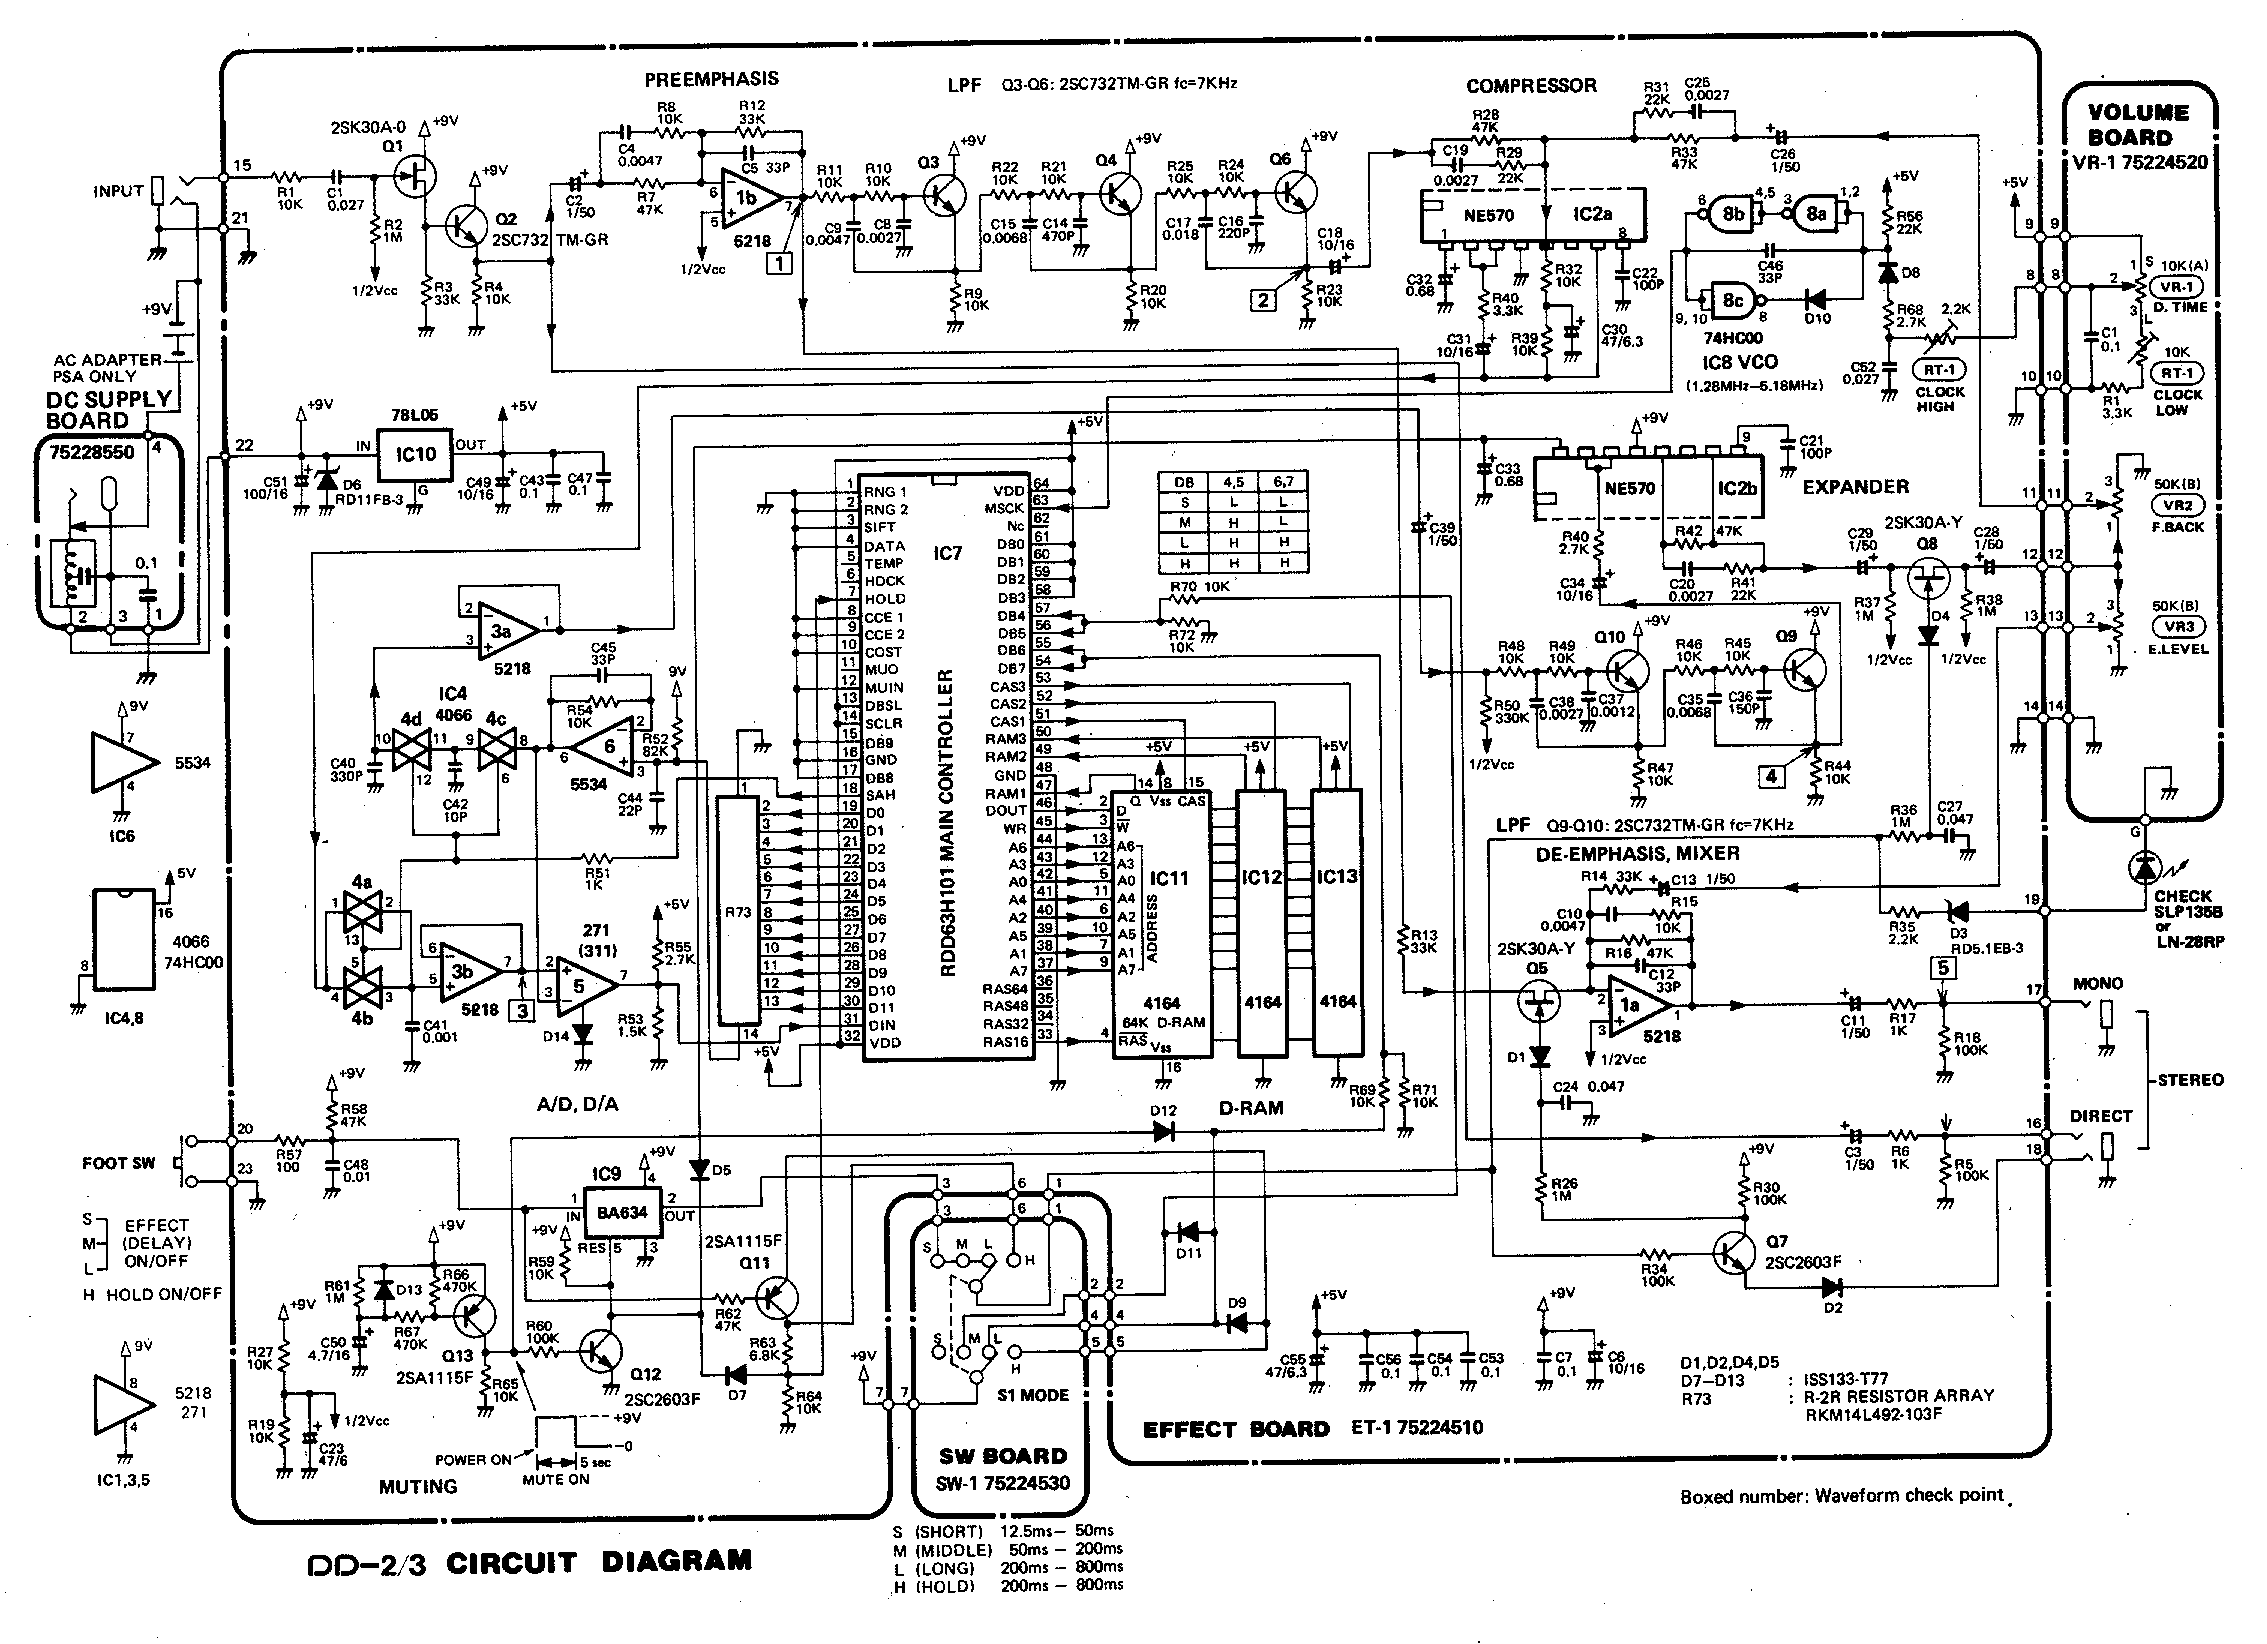 Index Of Diy Schematics Delay Echo And Samplers Digital Voice Record Playback Circuit Schematic Boss Dd 2